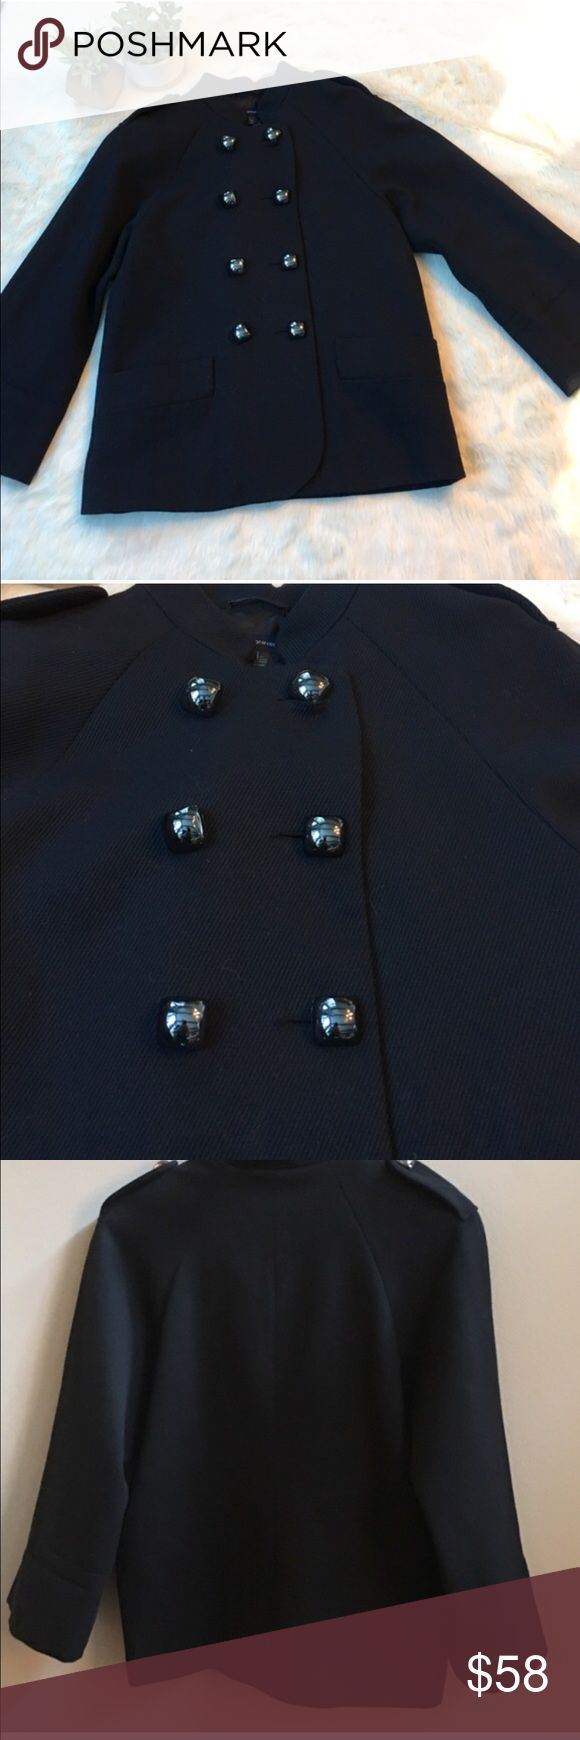 French Connection navy jacket w/silver buttons Dark navy blazer with chunky silver buttons. Excellent condition. Military look. Wide sleeves. French Connection Jackets & Coats